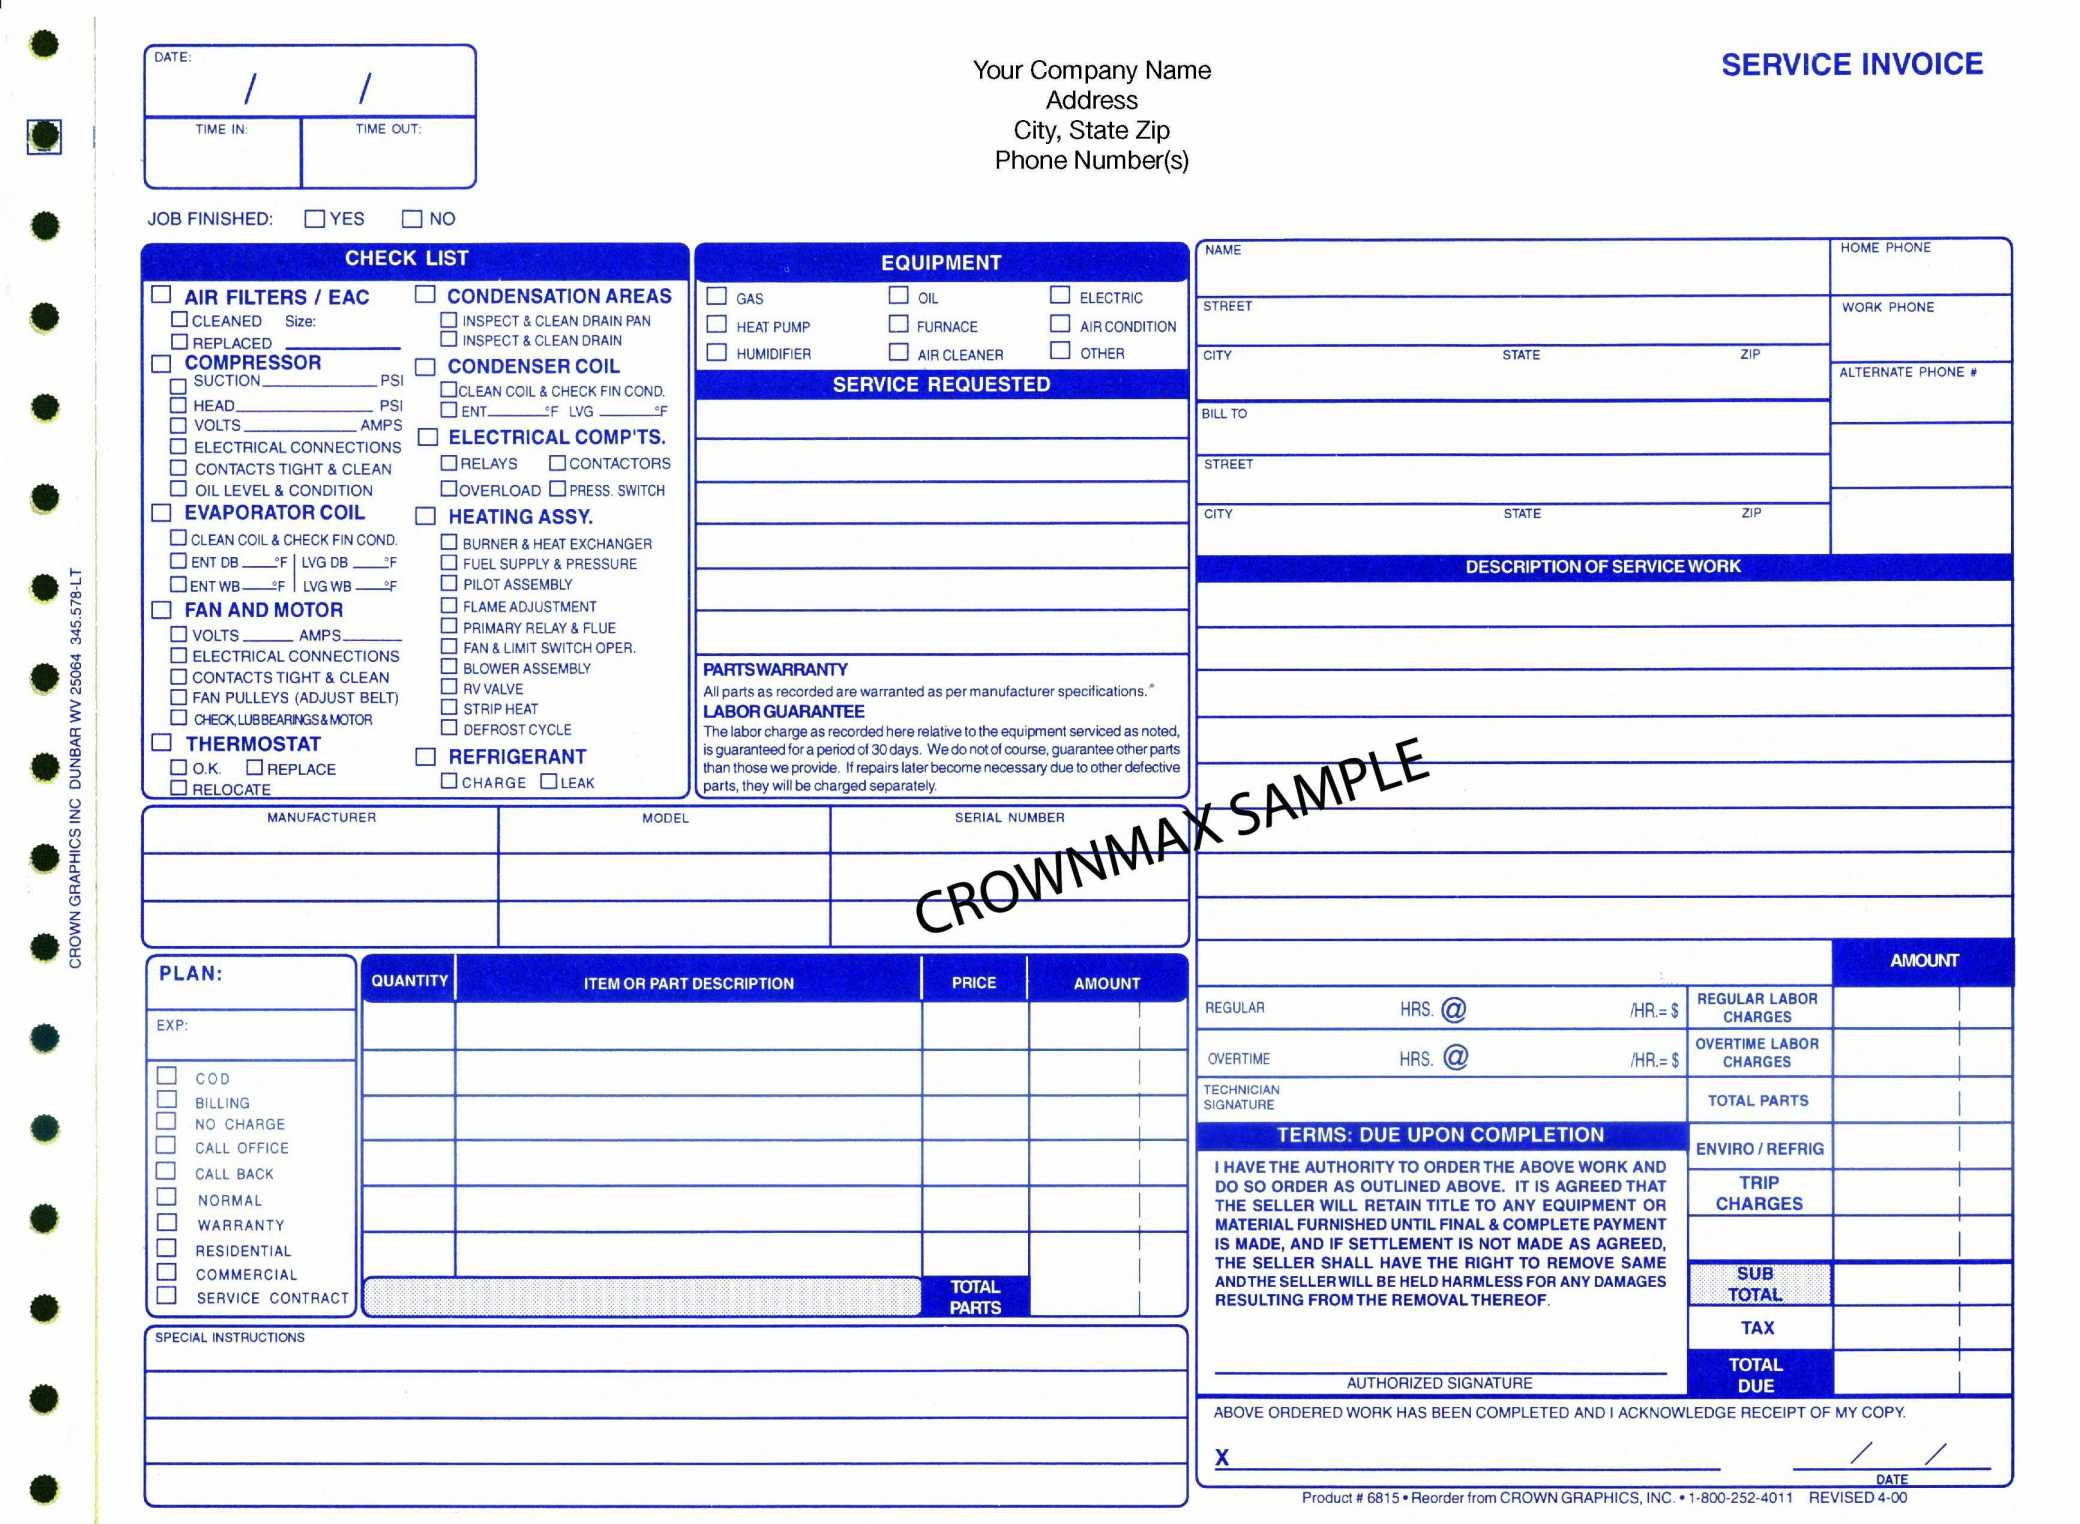 Construction Estimating Spreadsheet Template Luxury Process Server With Construction Estimating Spreadsheet Template